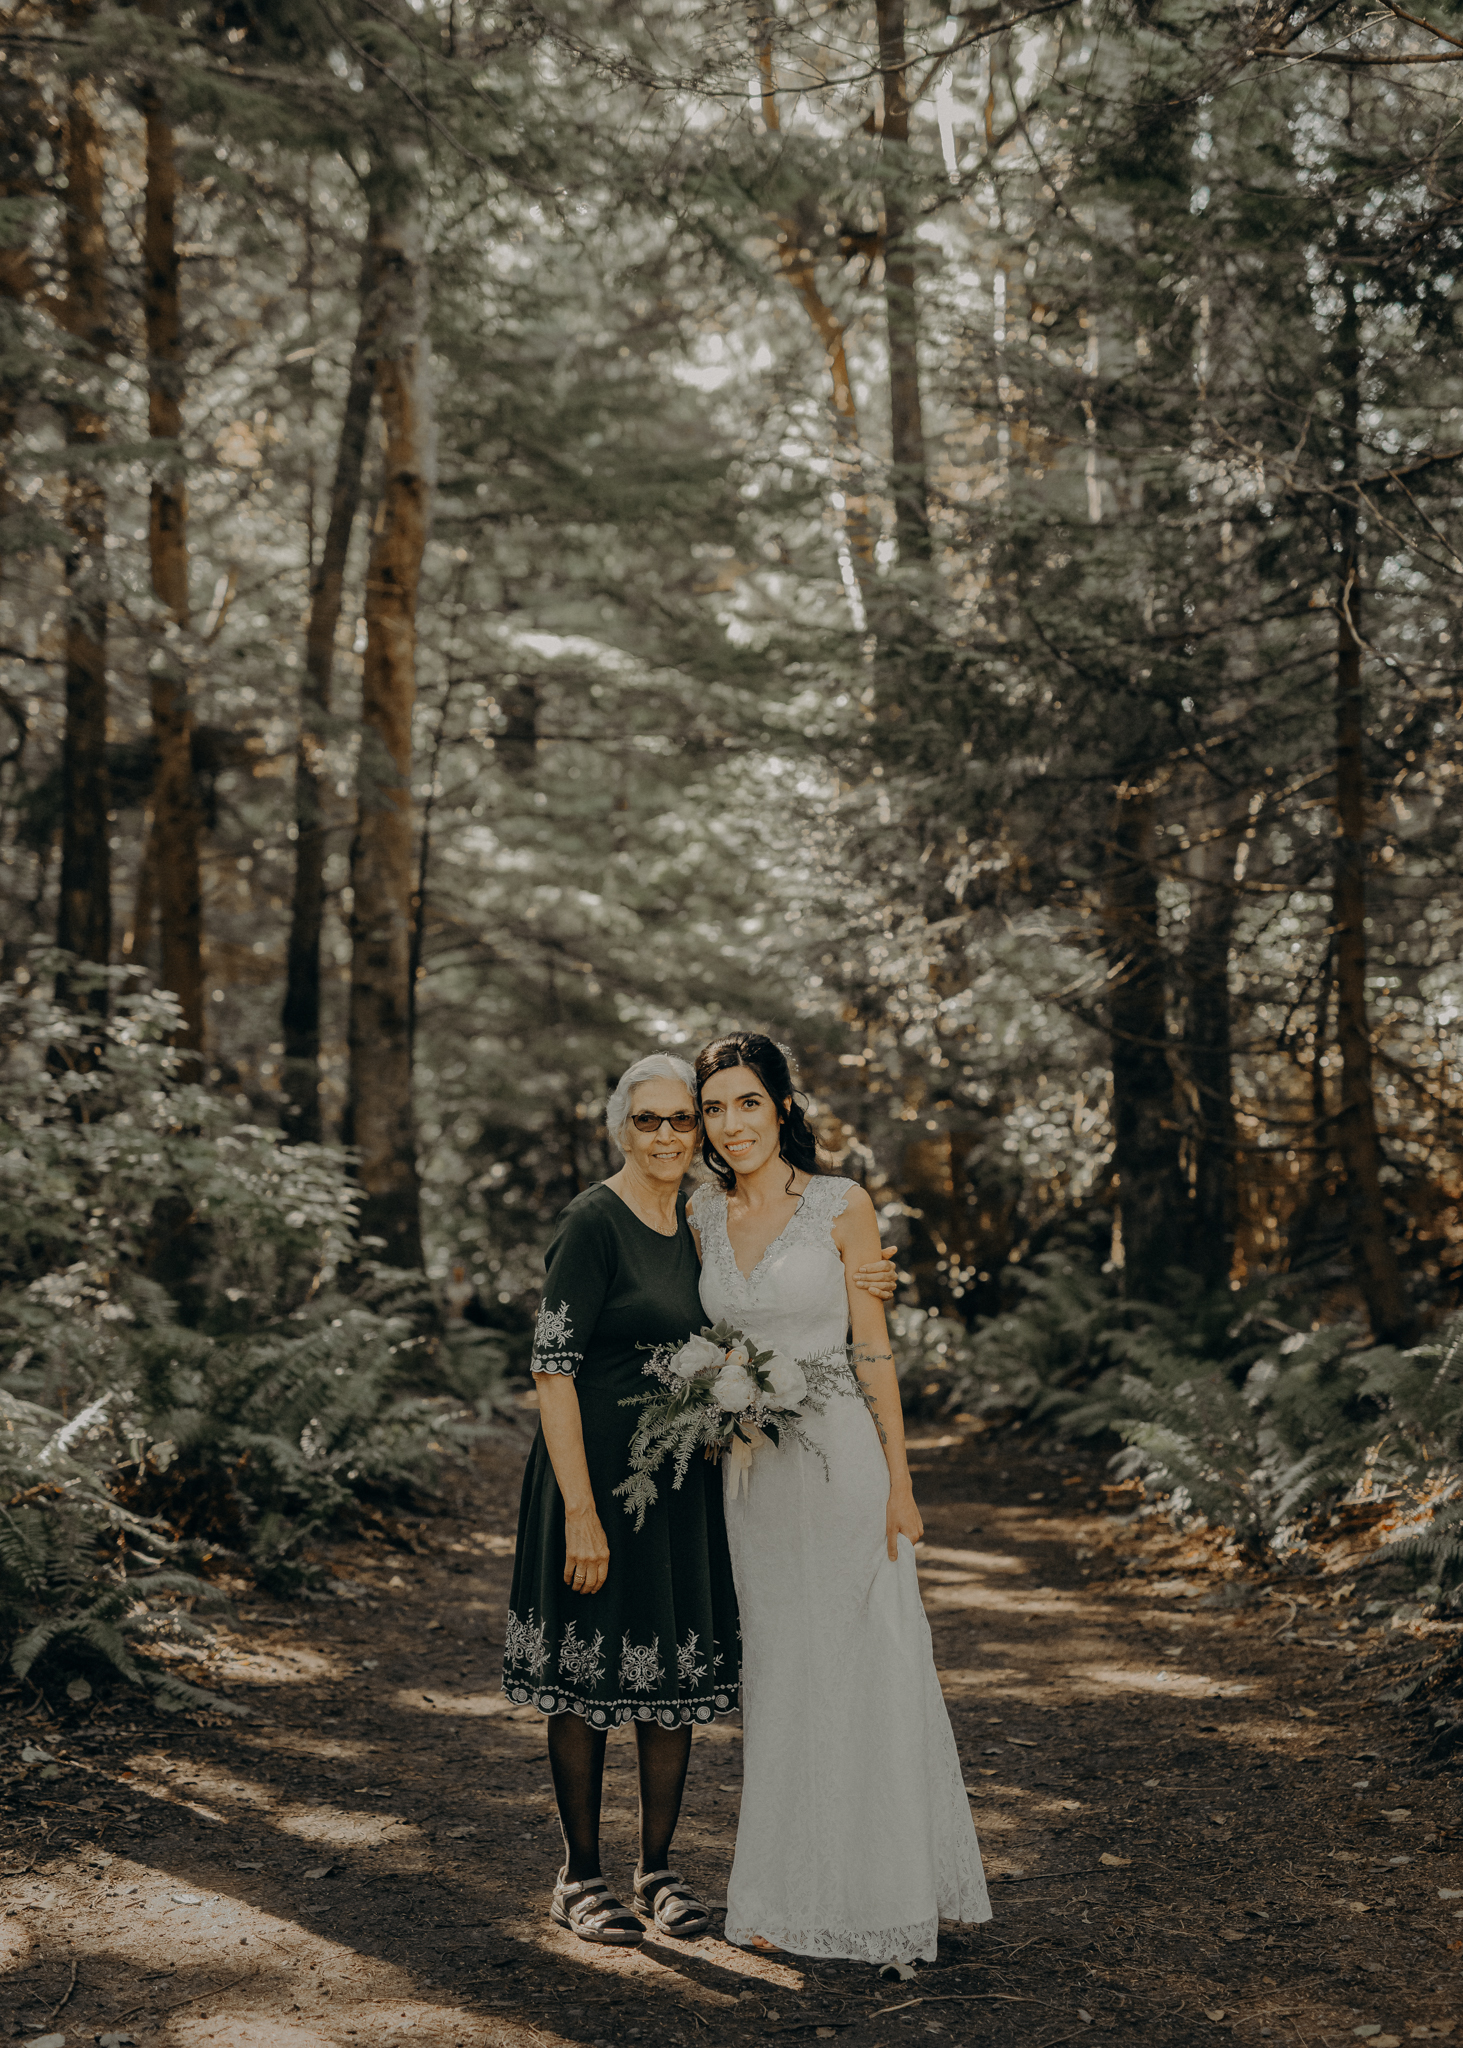 Isaiah + Taylor Photography - Cape Flattery Elopement, Olympia National Forest Wedding Photographer-029.jpg